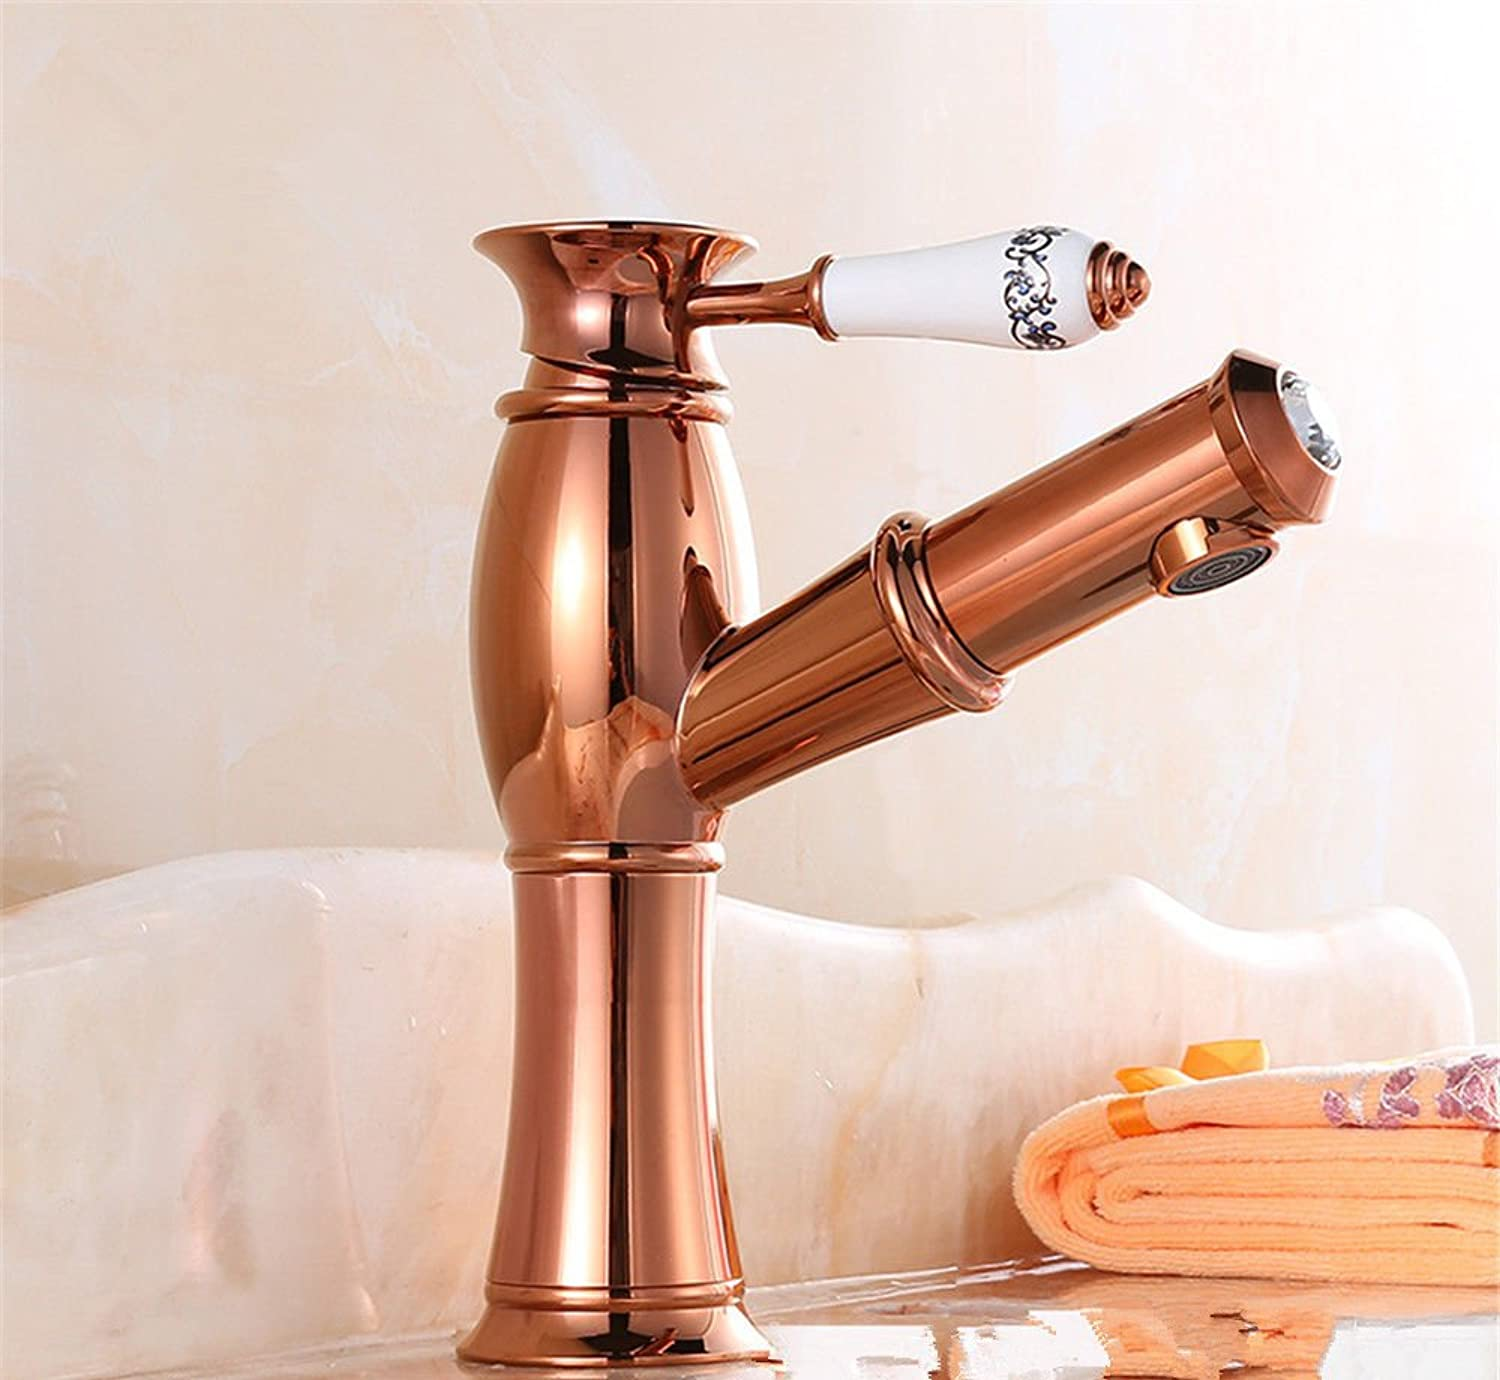 LHbox Basin Mixer Tap Bathroom Sink Faucet pink gold Euro-copper basin mixer basin faucet hot and cold sepia wash it scalable to pull, pink gold bluee enamel